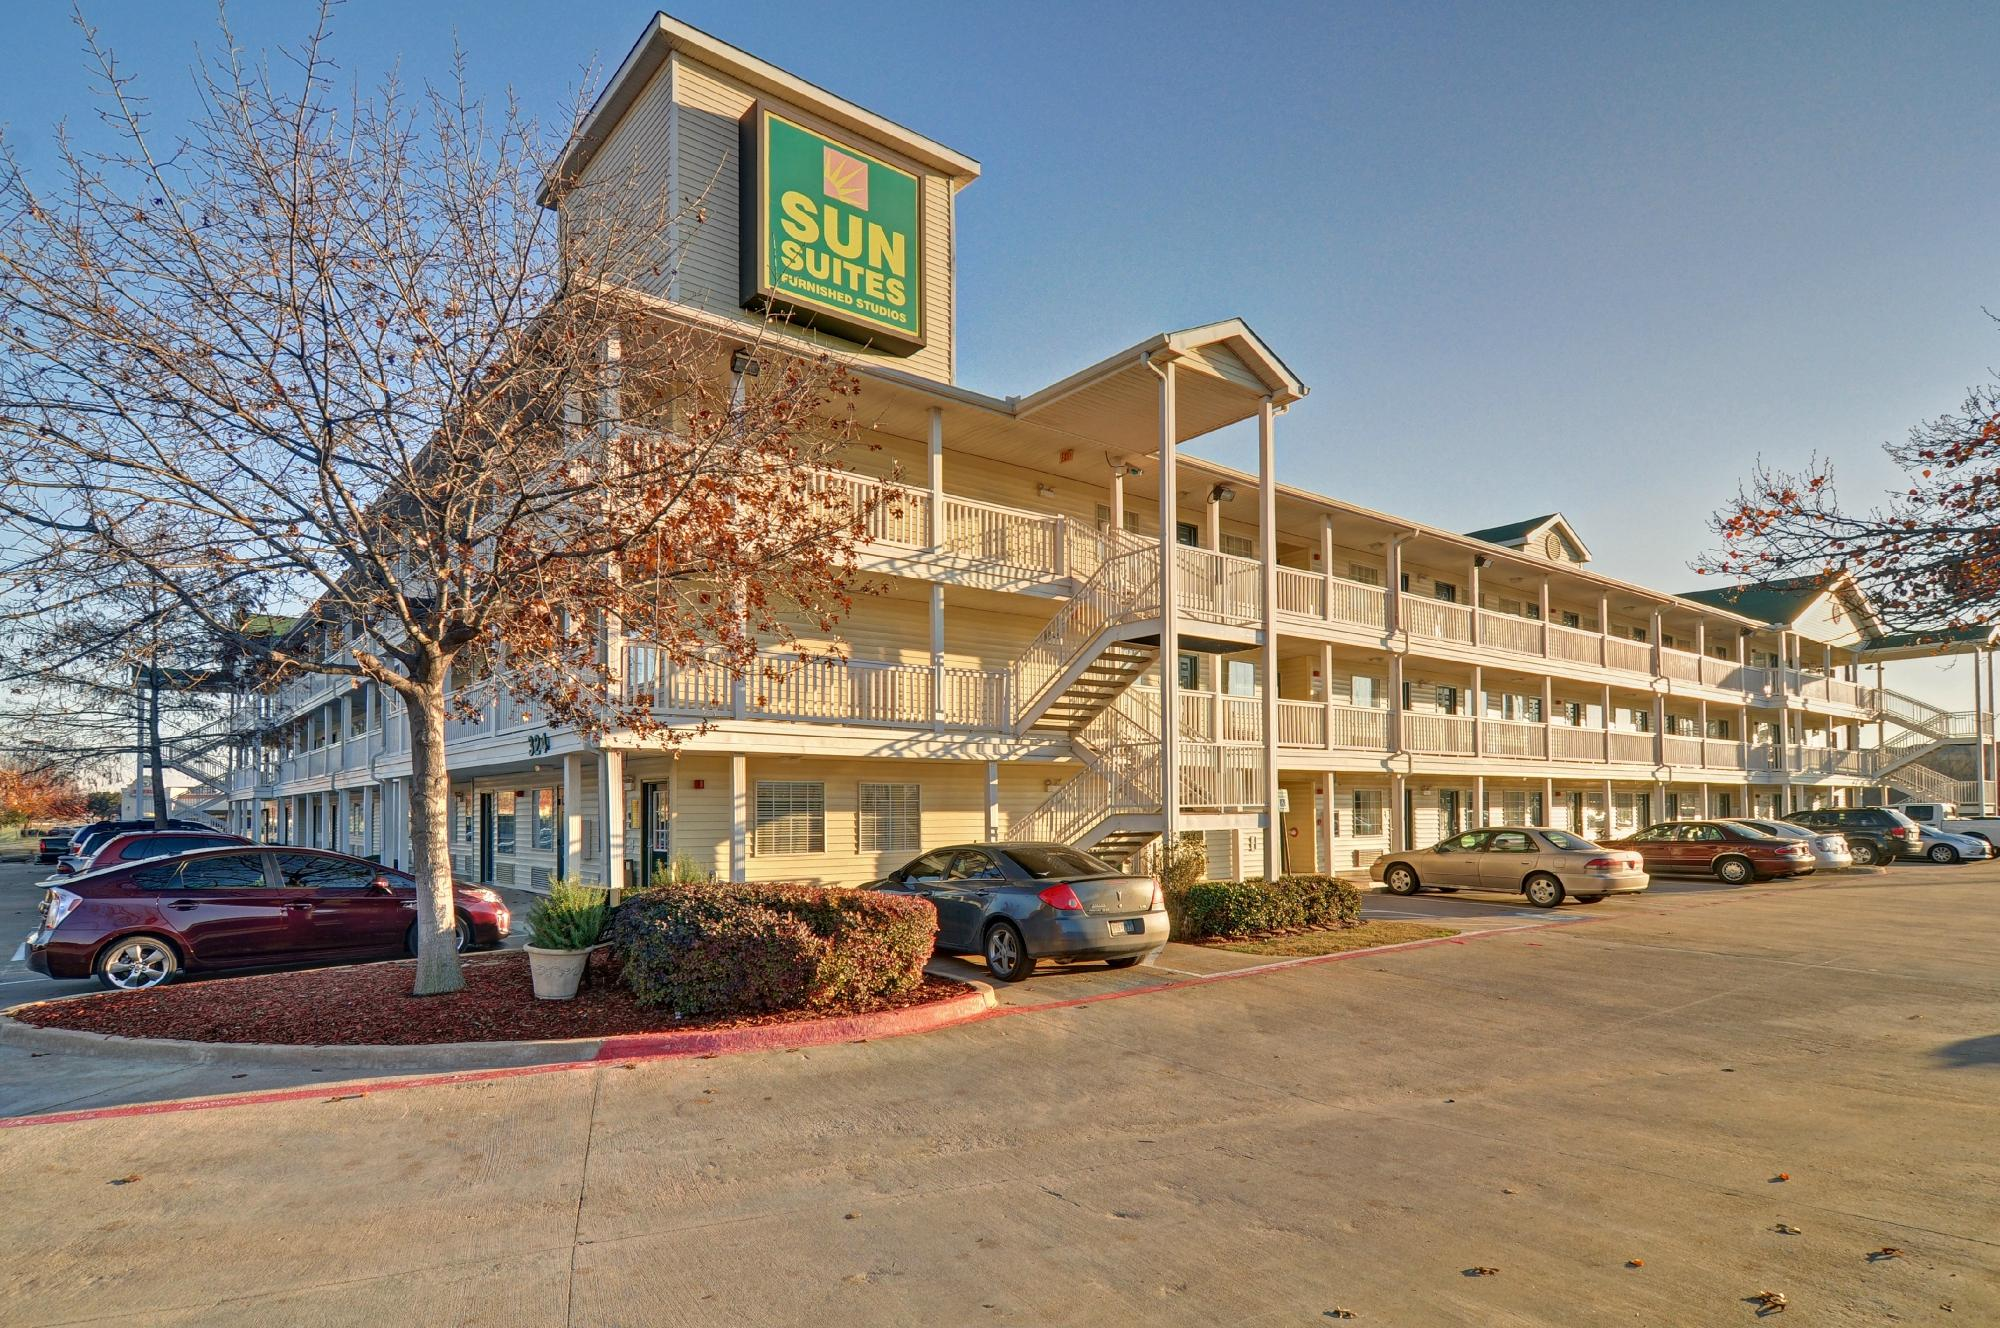 Sun Suites of Lewisville